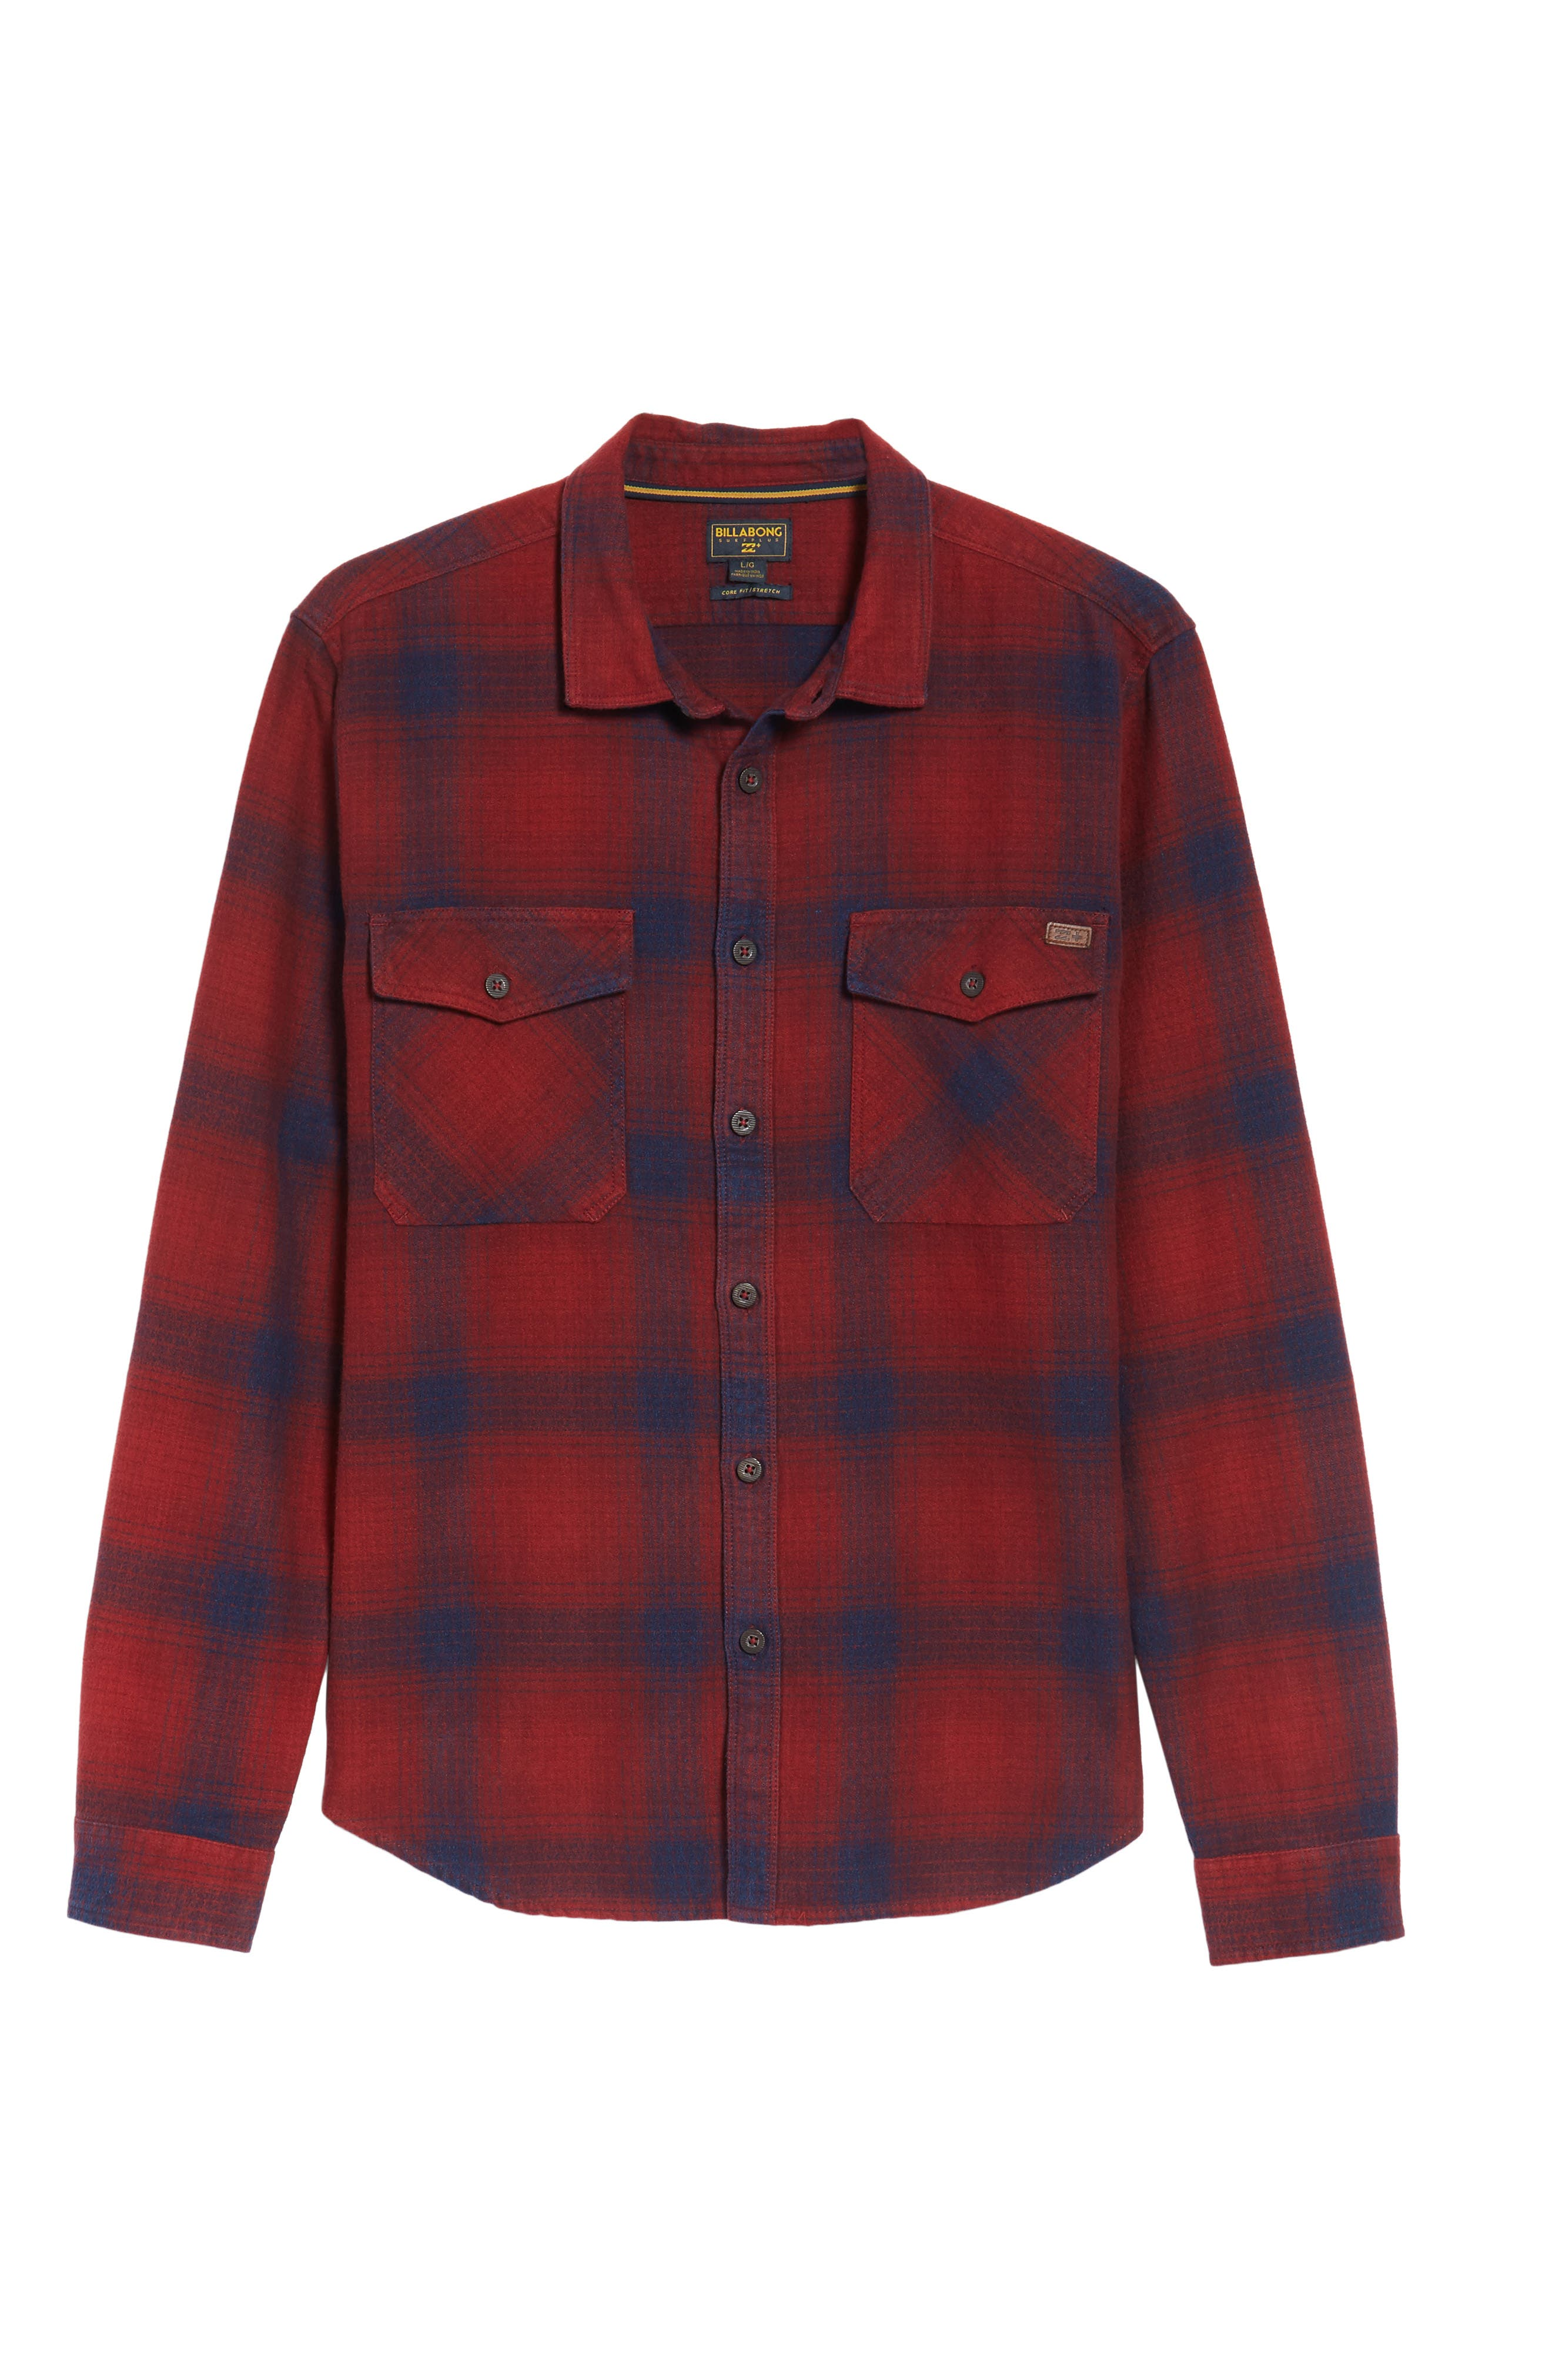 Ventura Flannel Shirt,                             Alternate thumbnail 6, color,                             Red